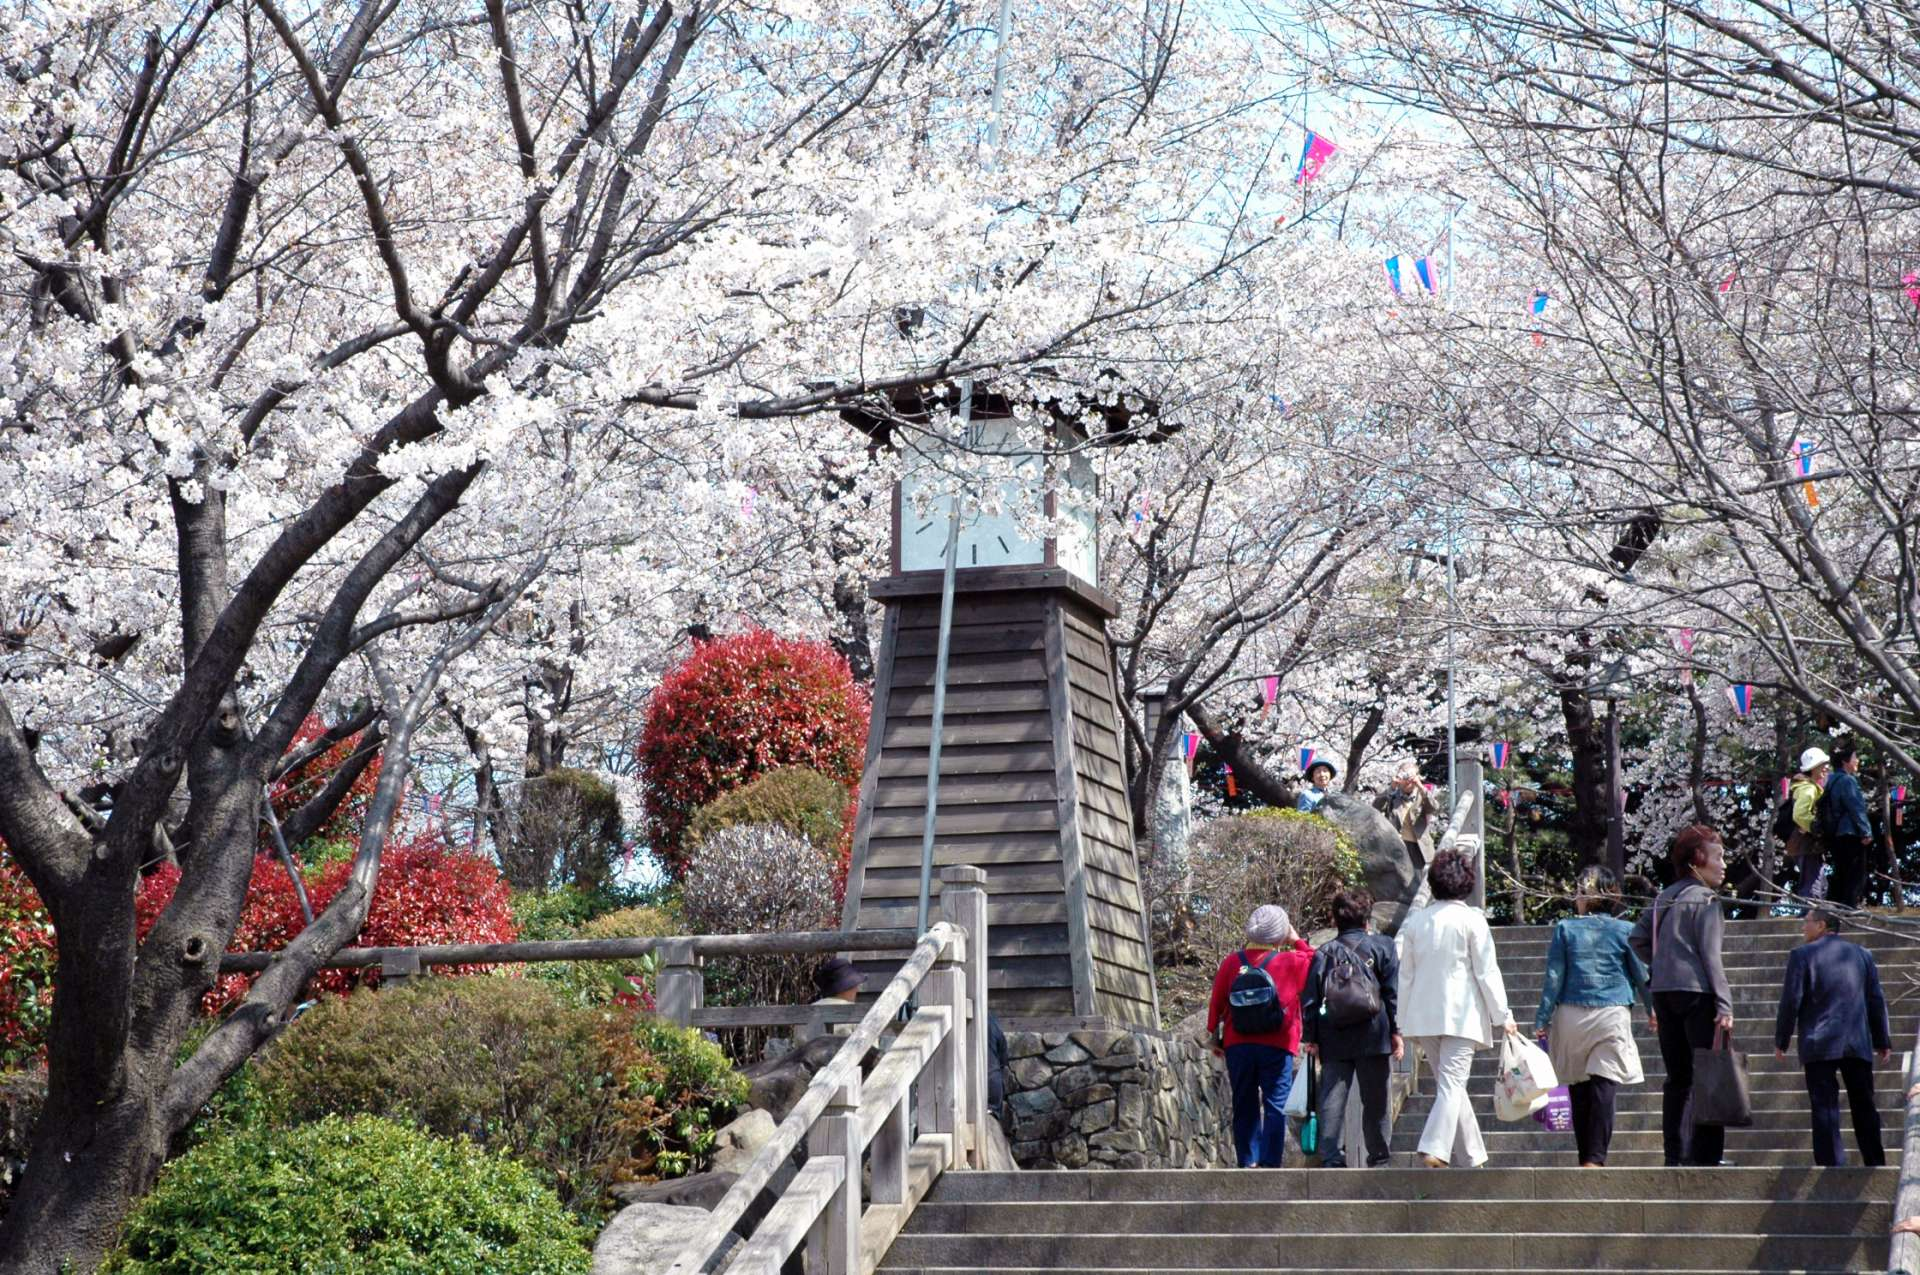 Cherry blossoms at Asukayama Park